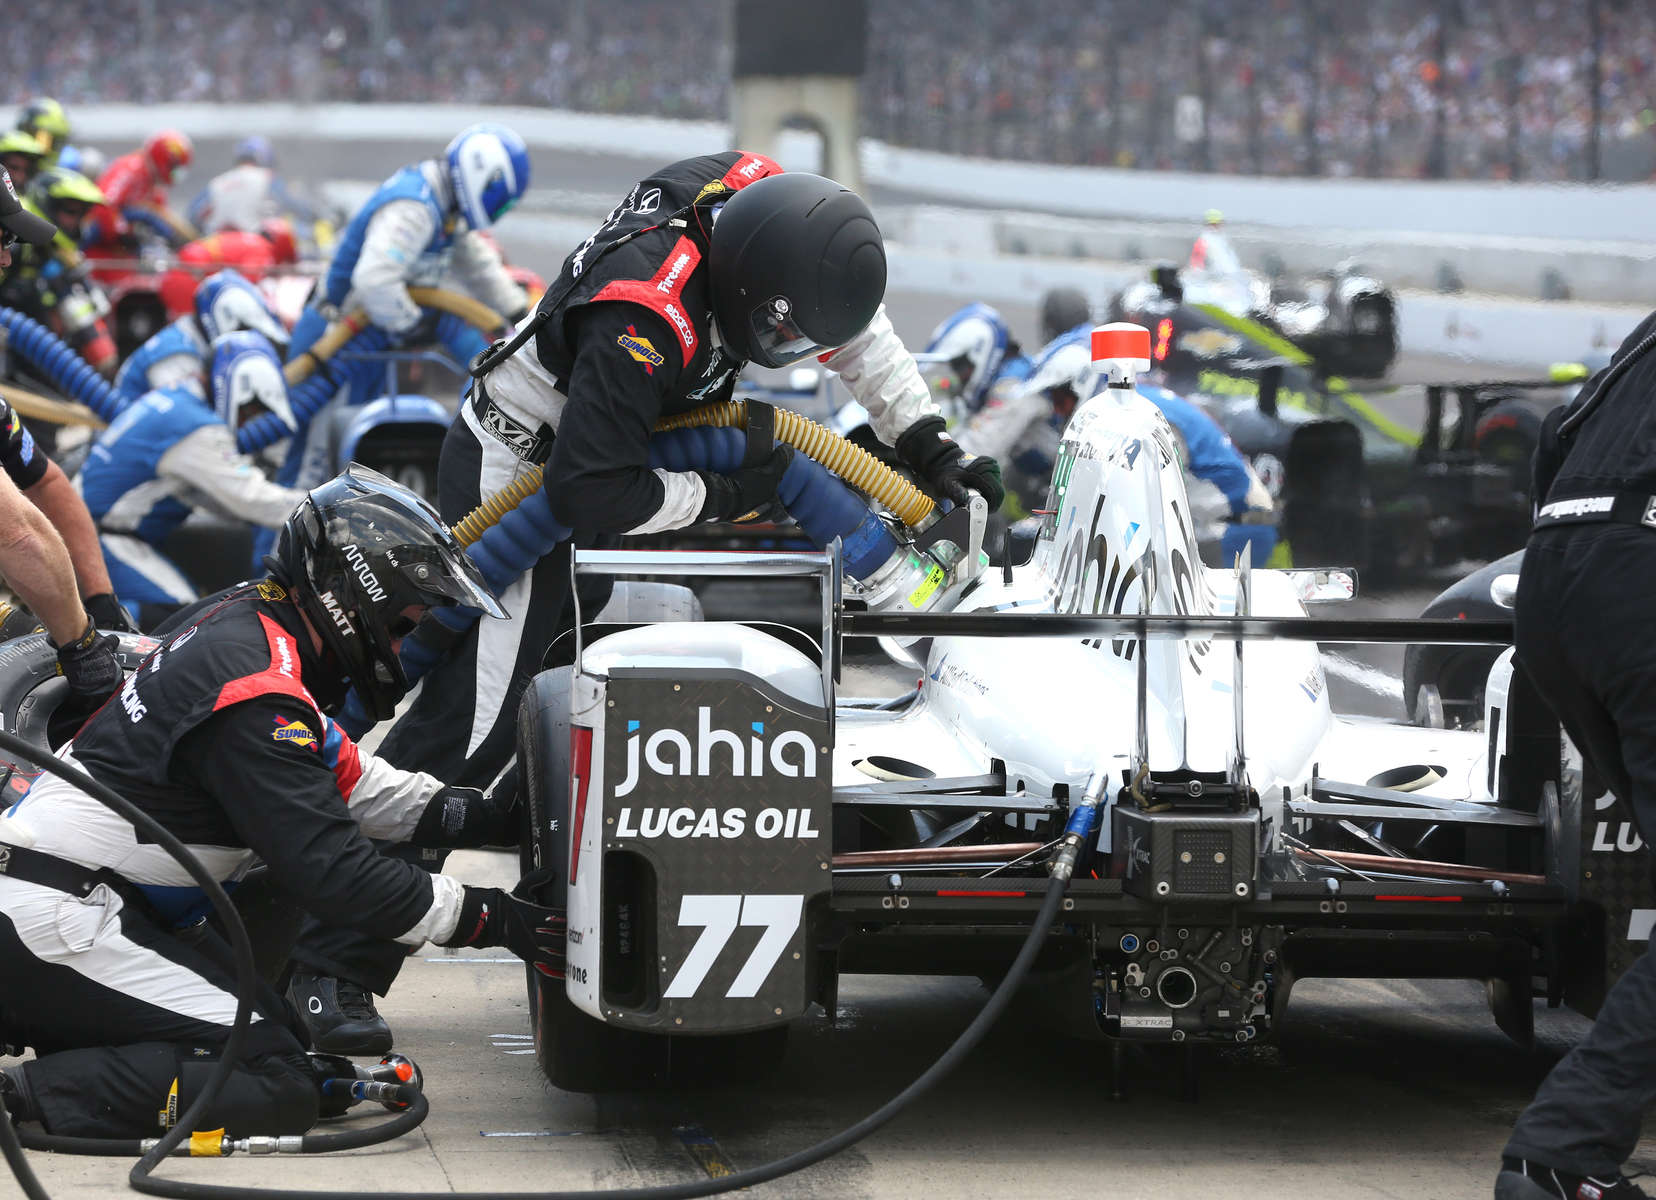 Orion Servia's crew completes a pit stop during the 100th running of the Indianapolis 500 May 29, 2016.